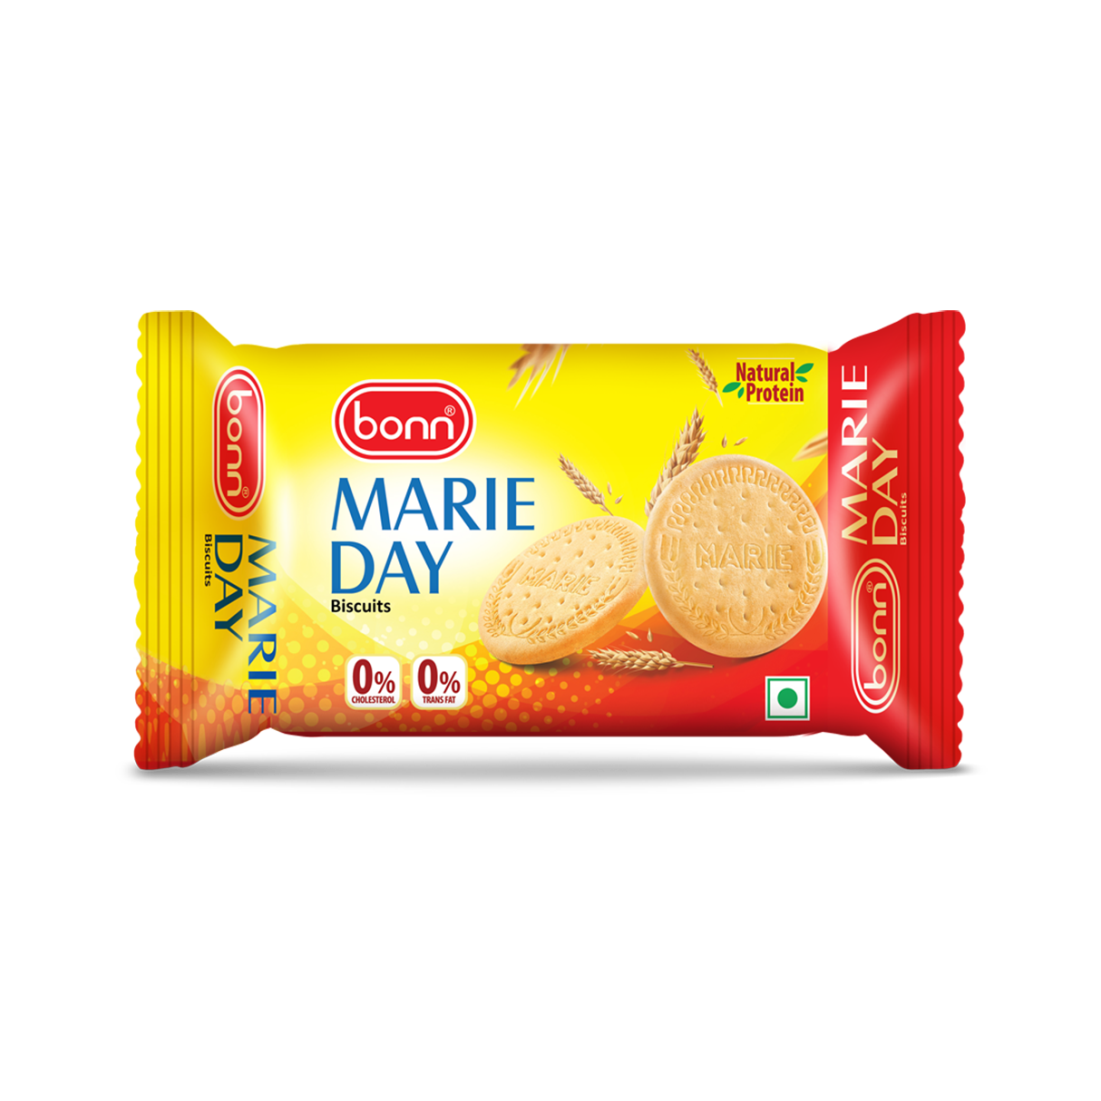 Bonn Marie Day Biscuits